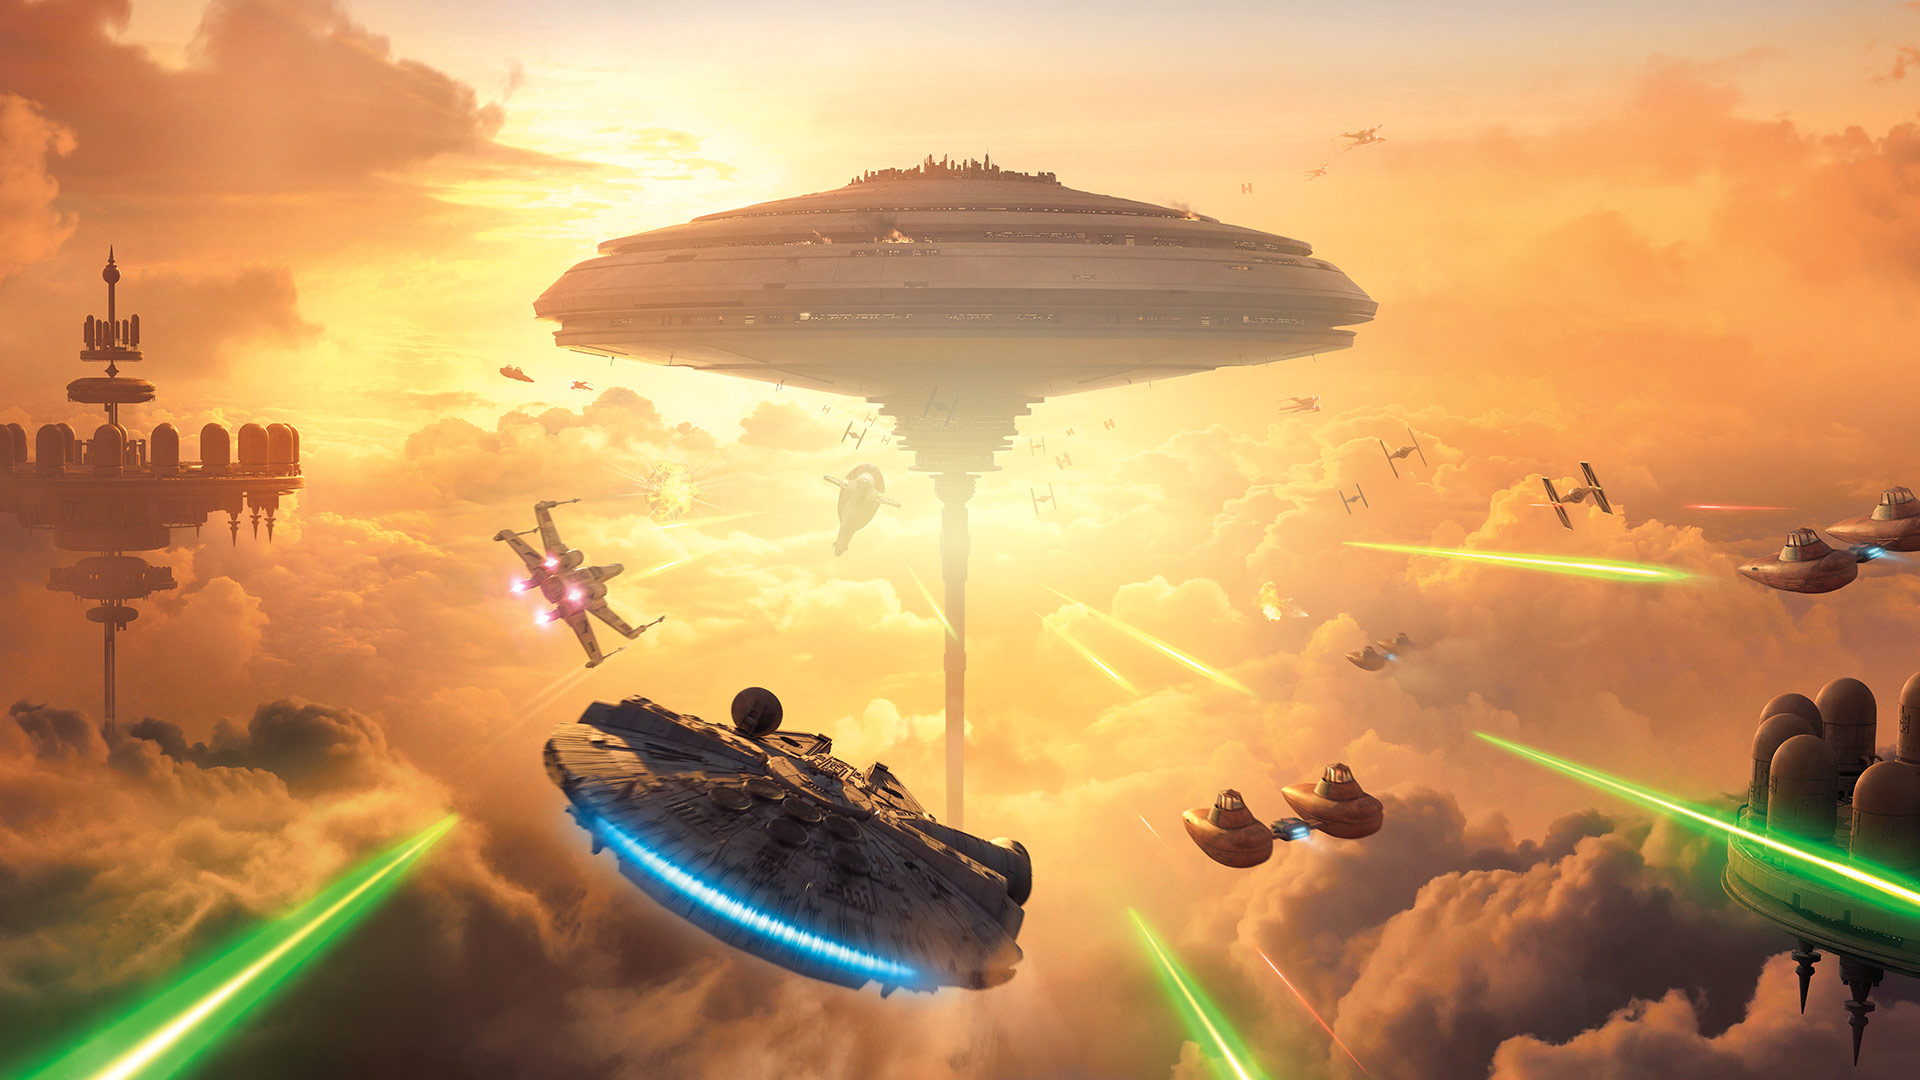 Bespin-key-art-no-text-1920x1080-Need-iPhone-S-Plus-Background-for-IPhoneSPlu-wallpaper-wp3603192